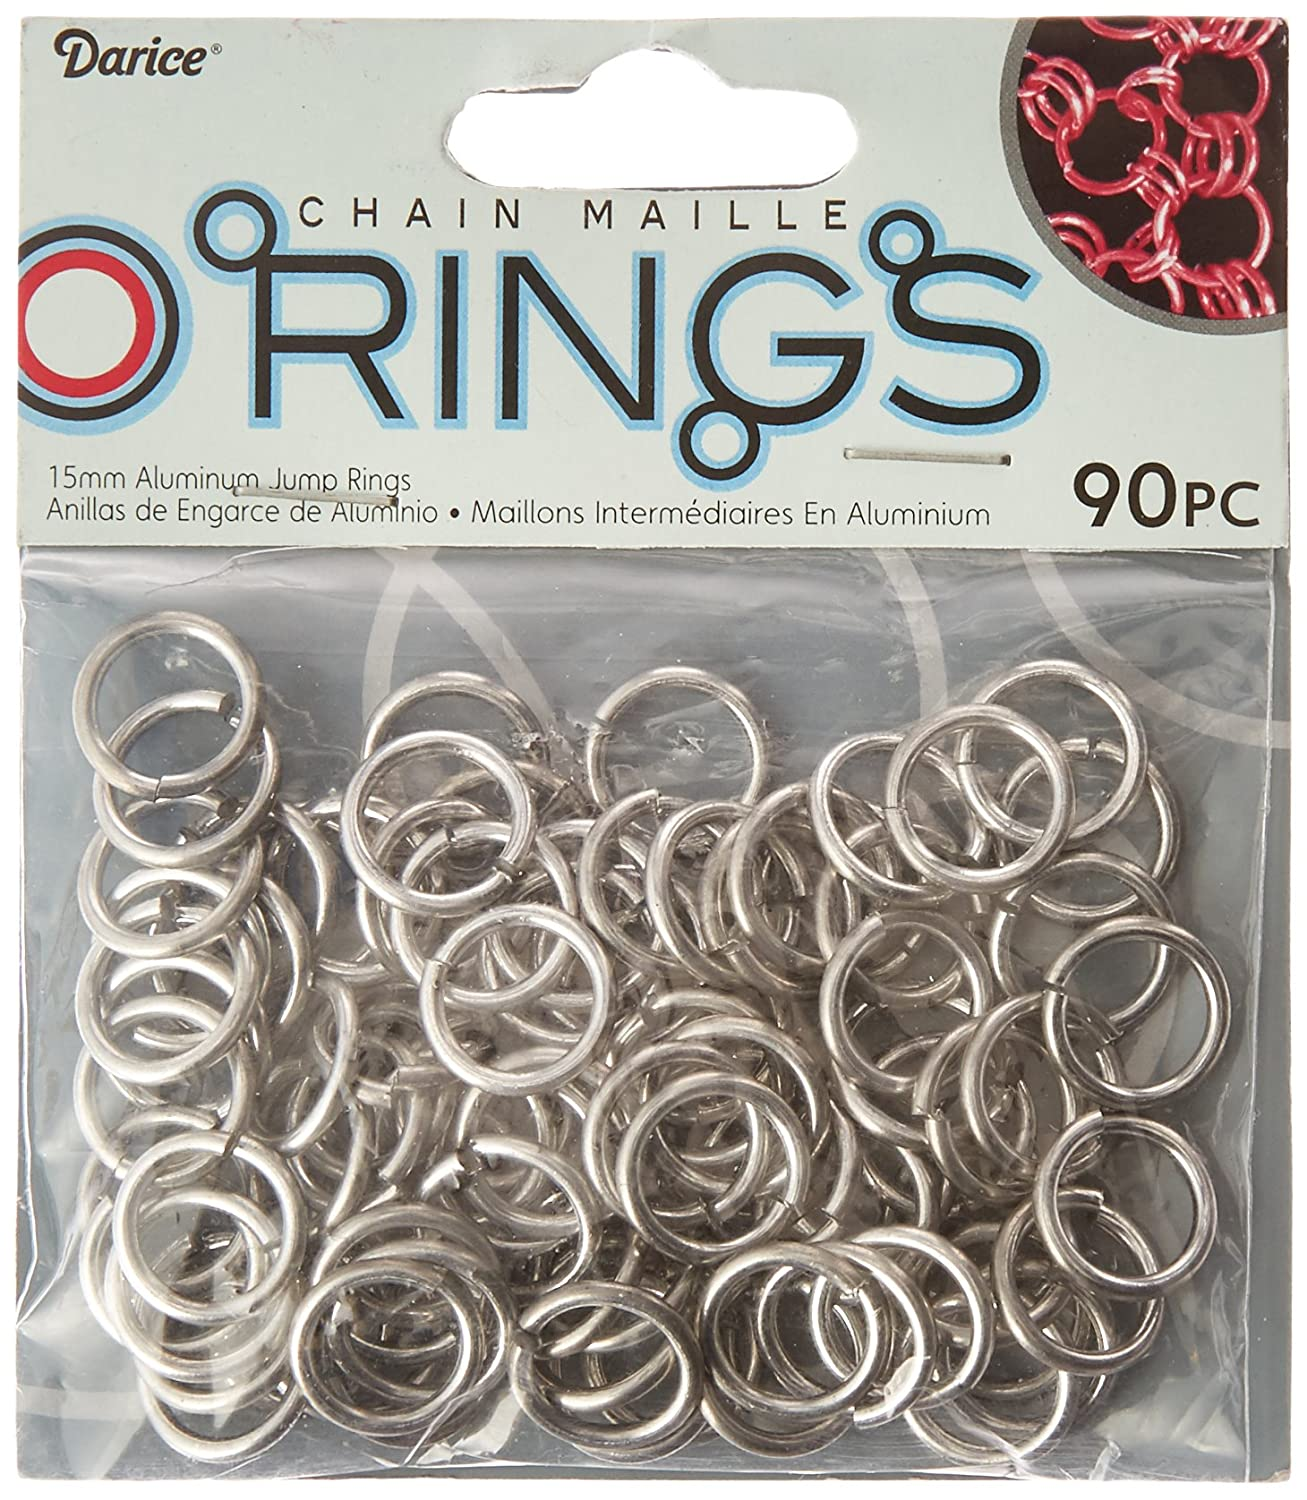 Darice 90 Piece Chain Maille Aluminum Jump Rings, 15mm, Silver Armor BG1042